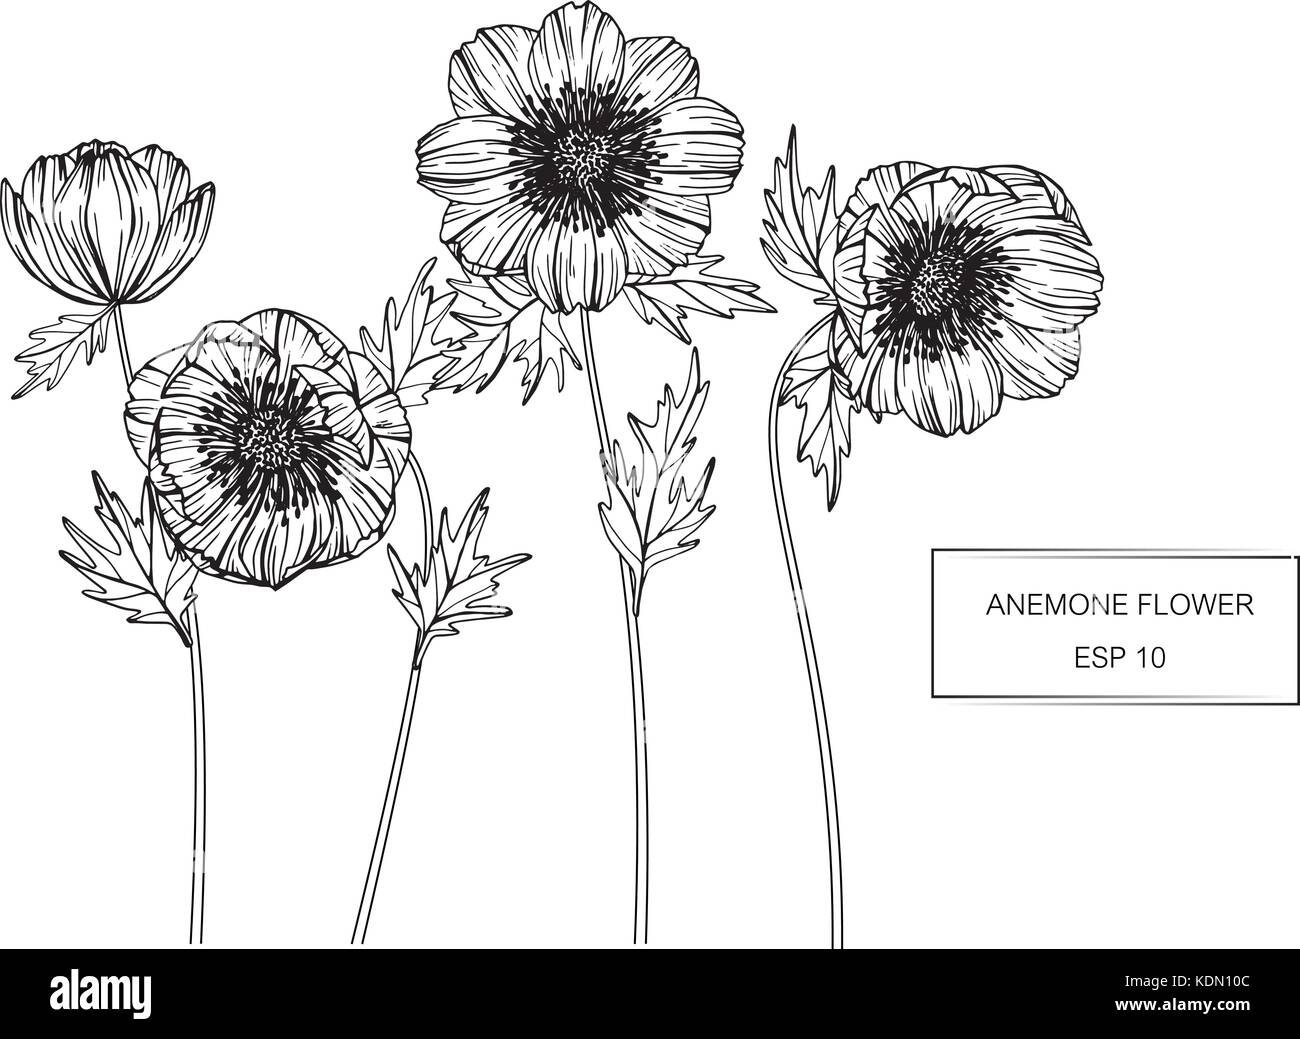 Anemone flower drawing  illustration. Black and white with line art. - Stock Vector